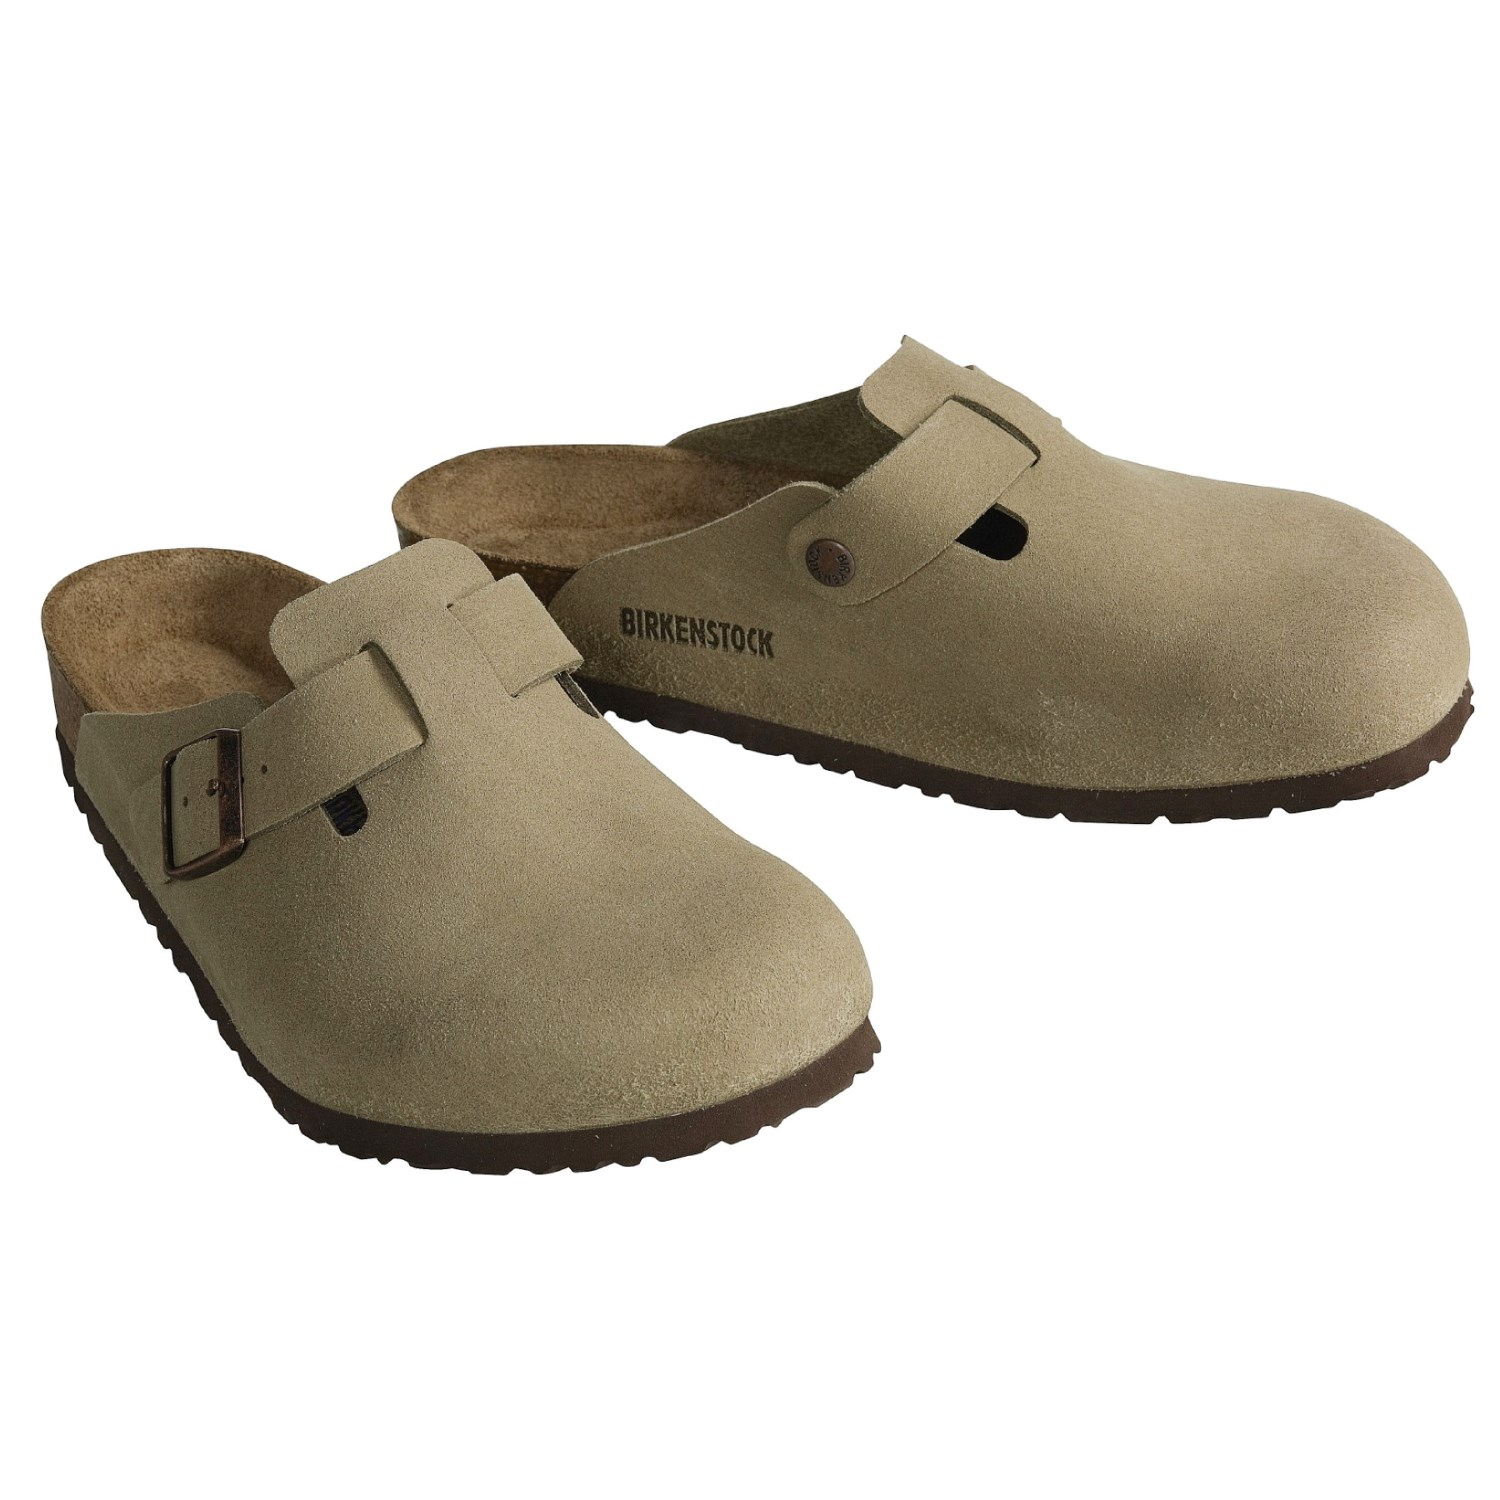 birkenstock boston clogs for men